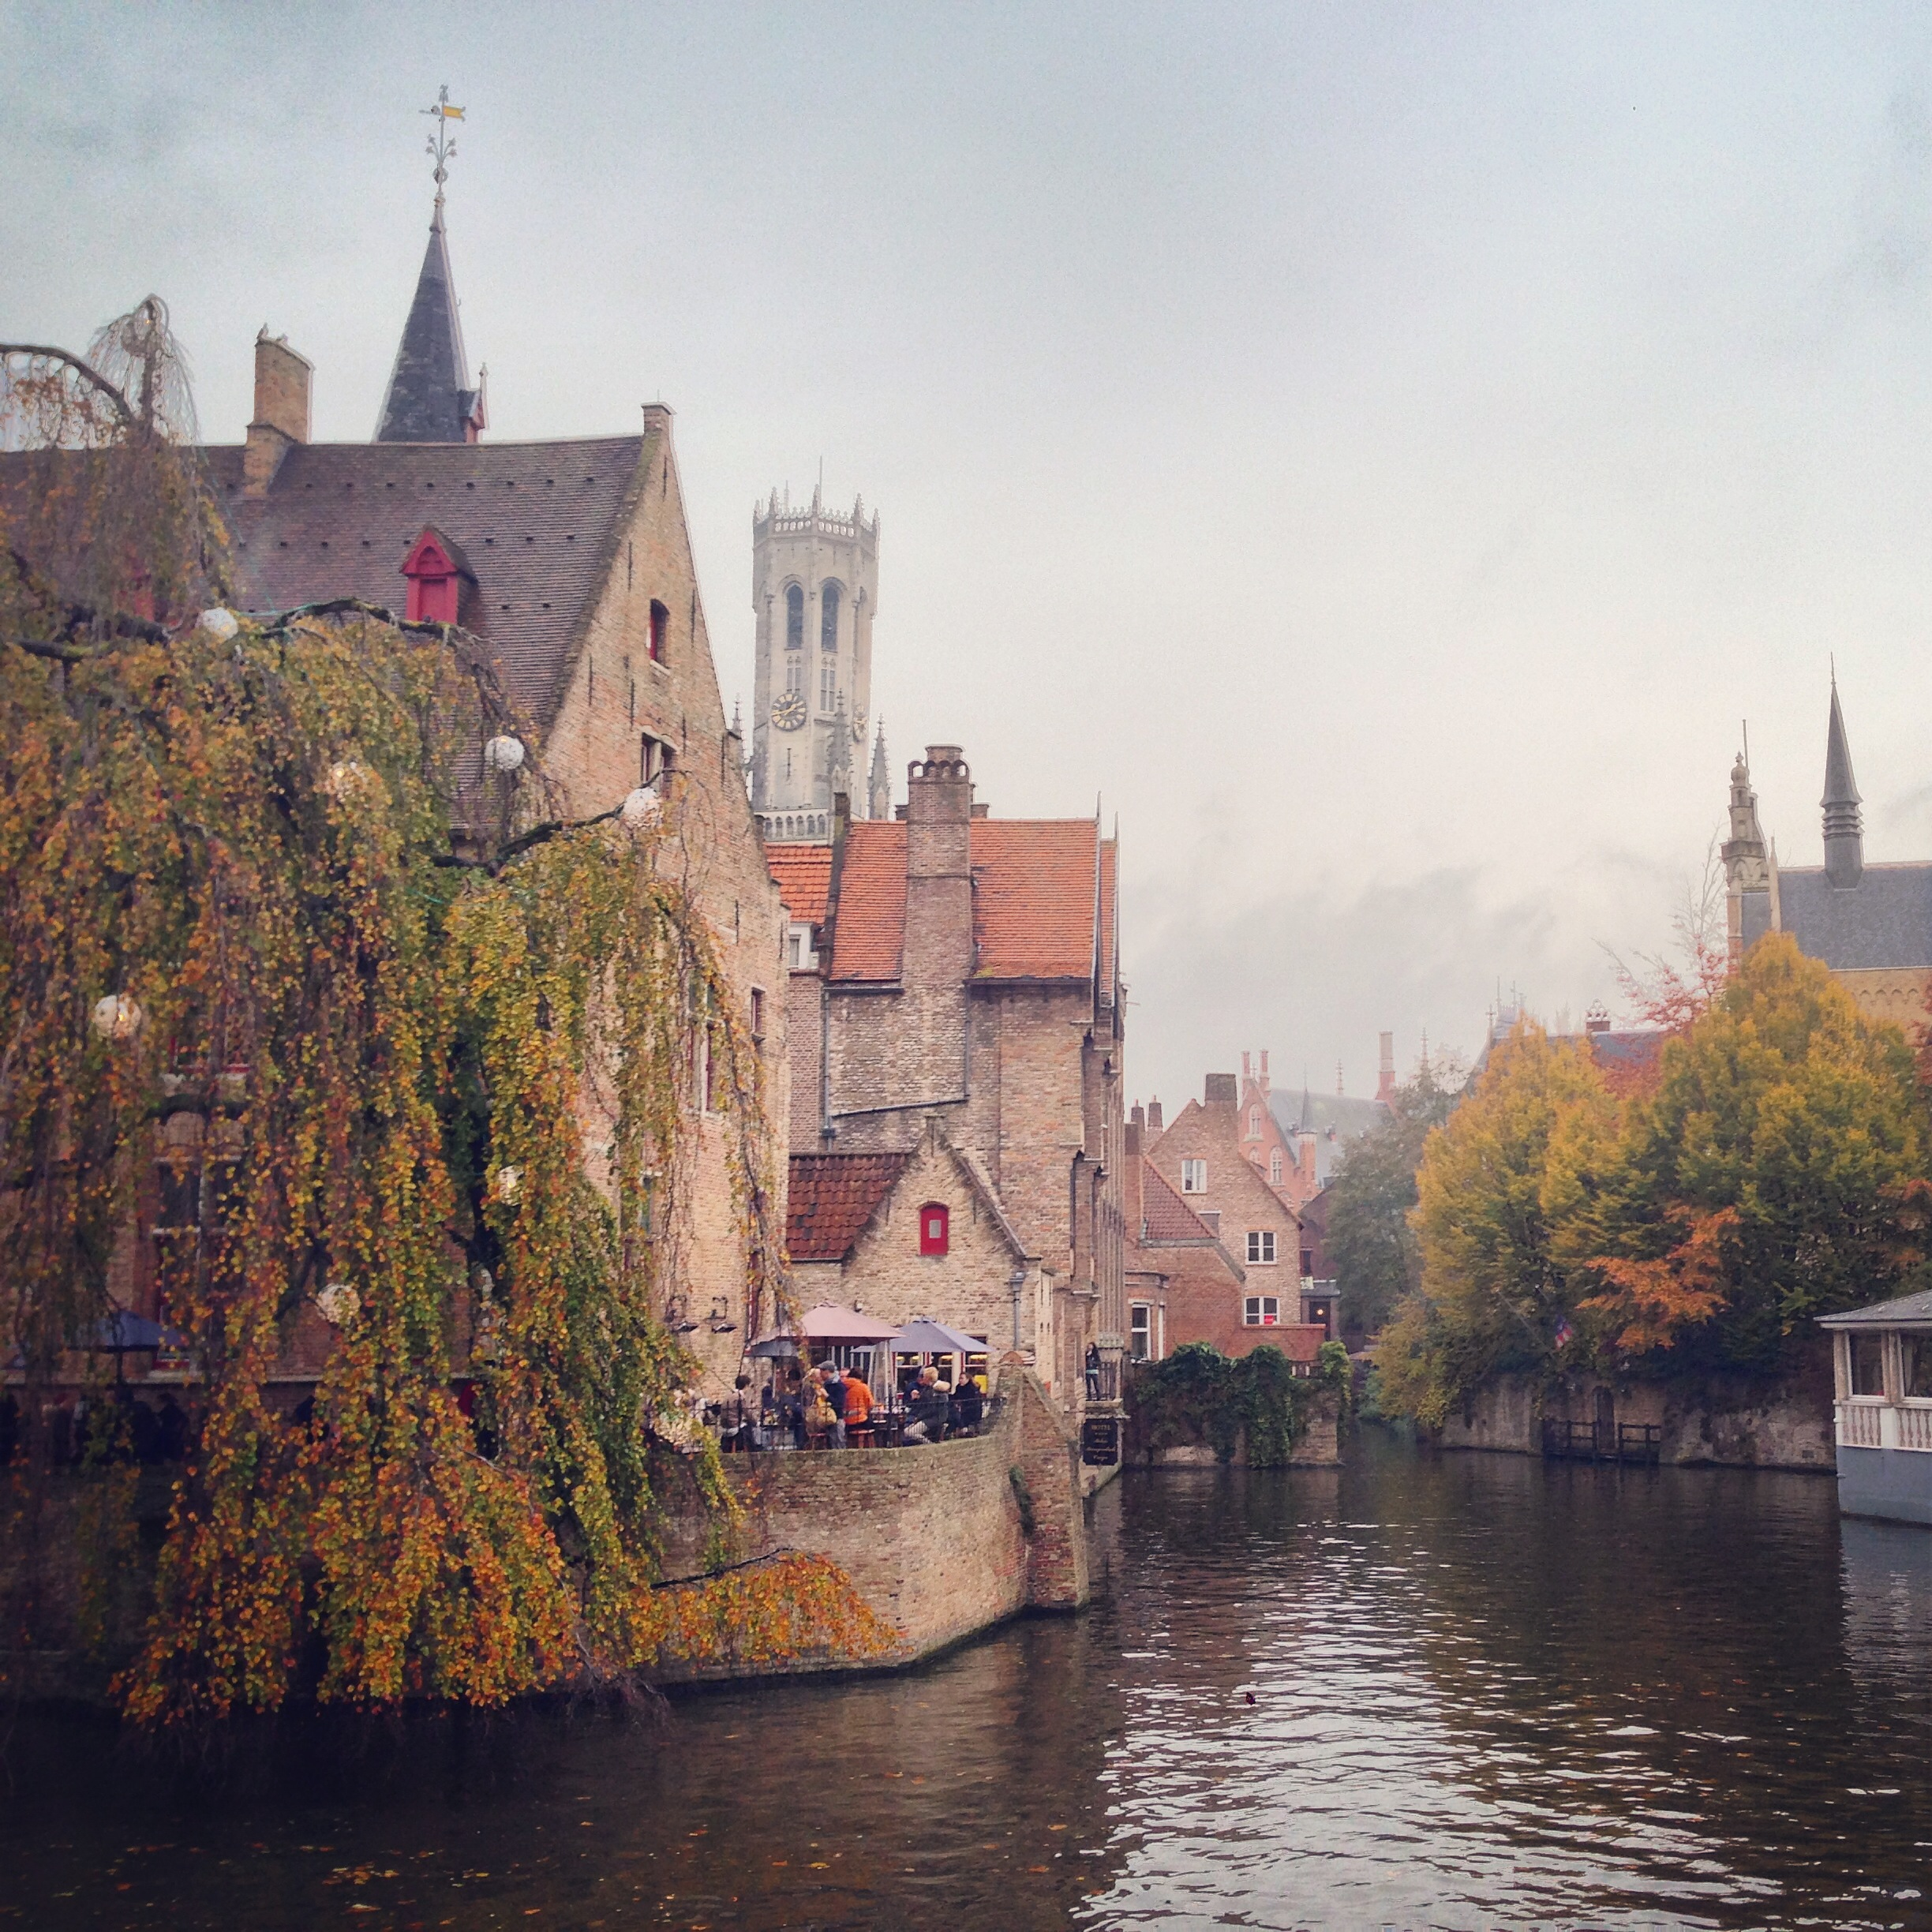 Mysterious, medieval Brugge with its canals andold winding streets